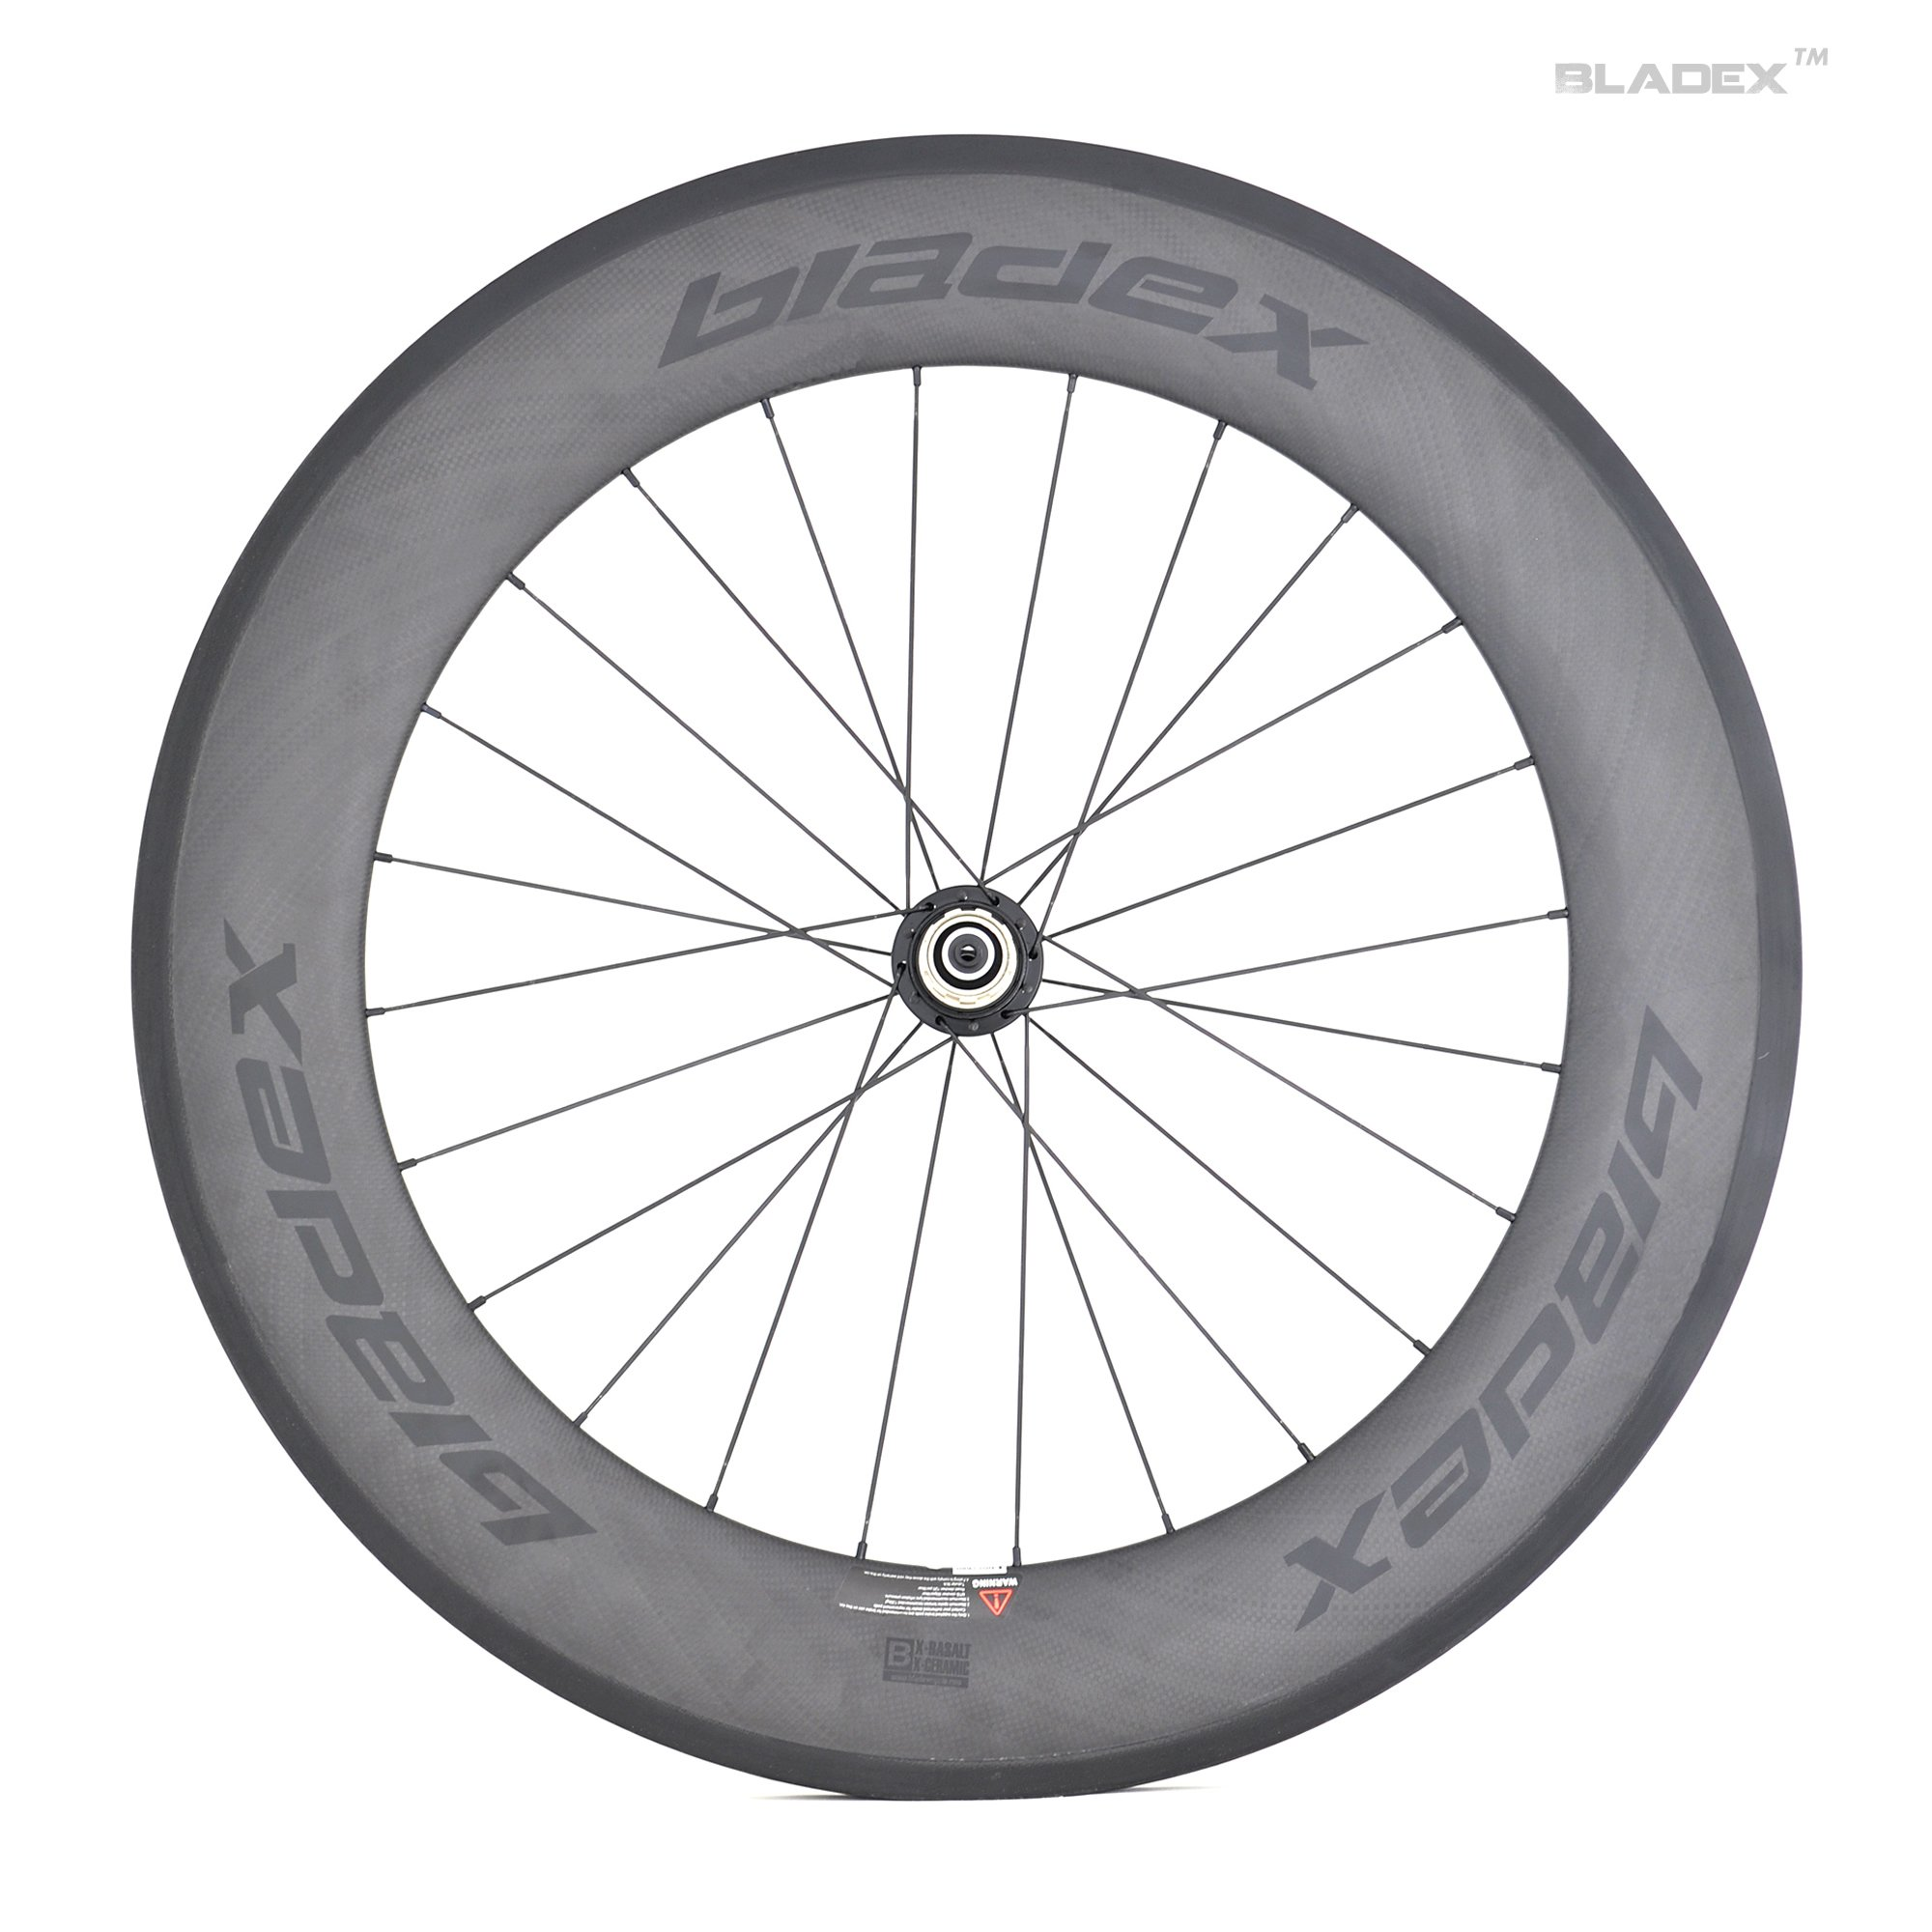 Pro Road Bike 88mm Carbon Wheels 700c Road Bike Wheels Cycling